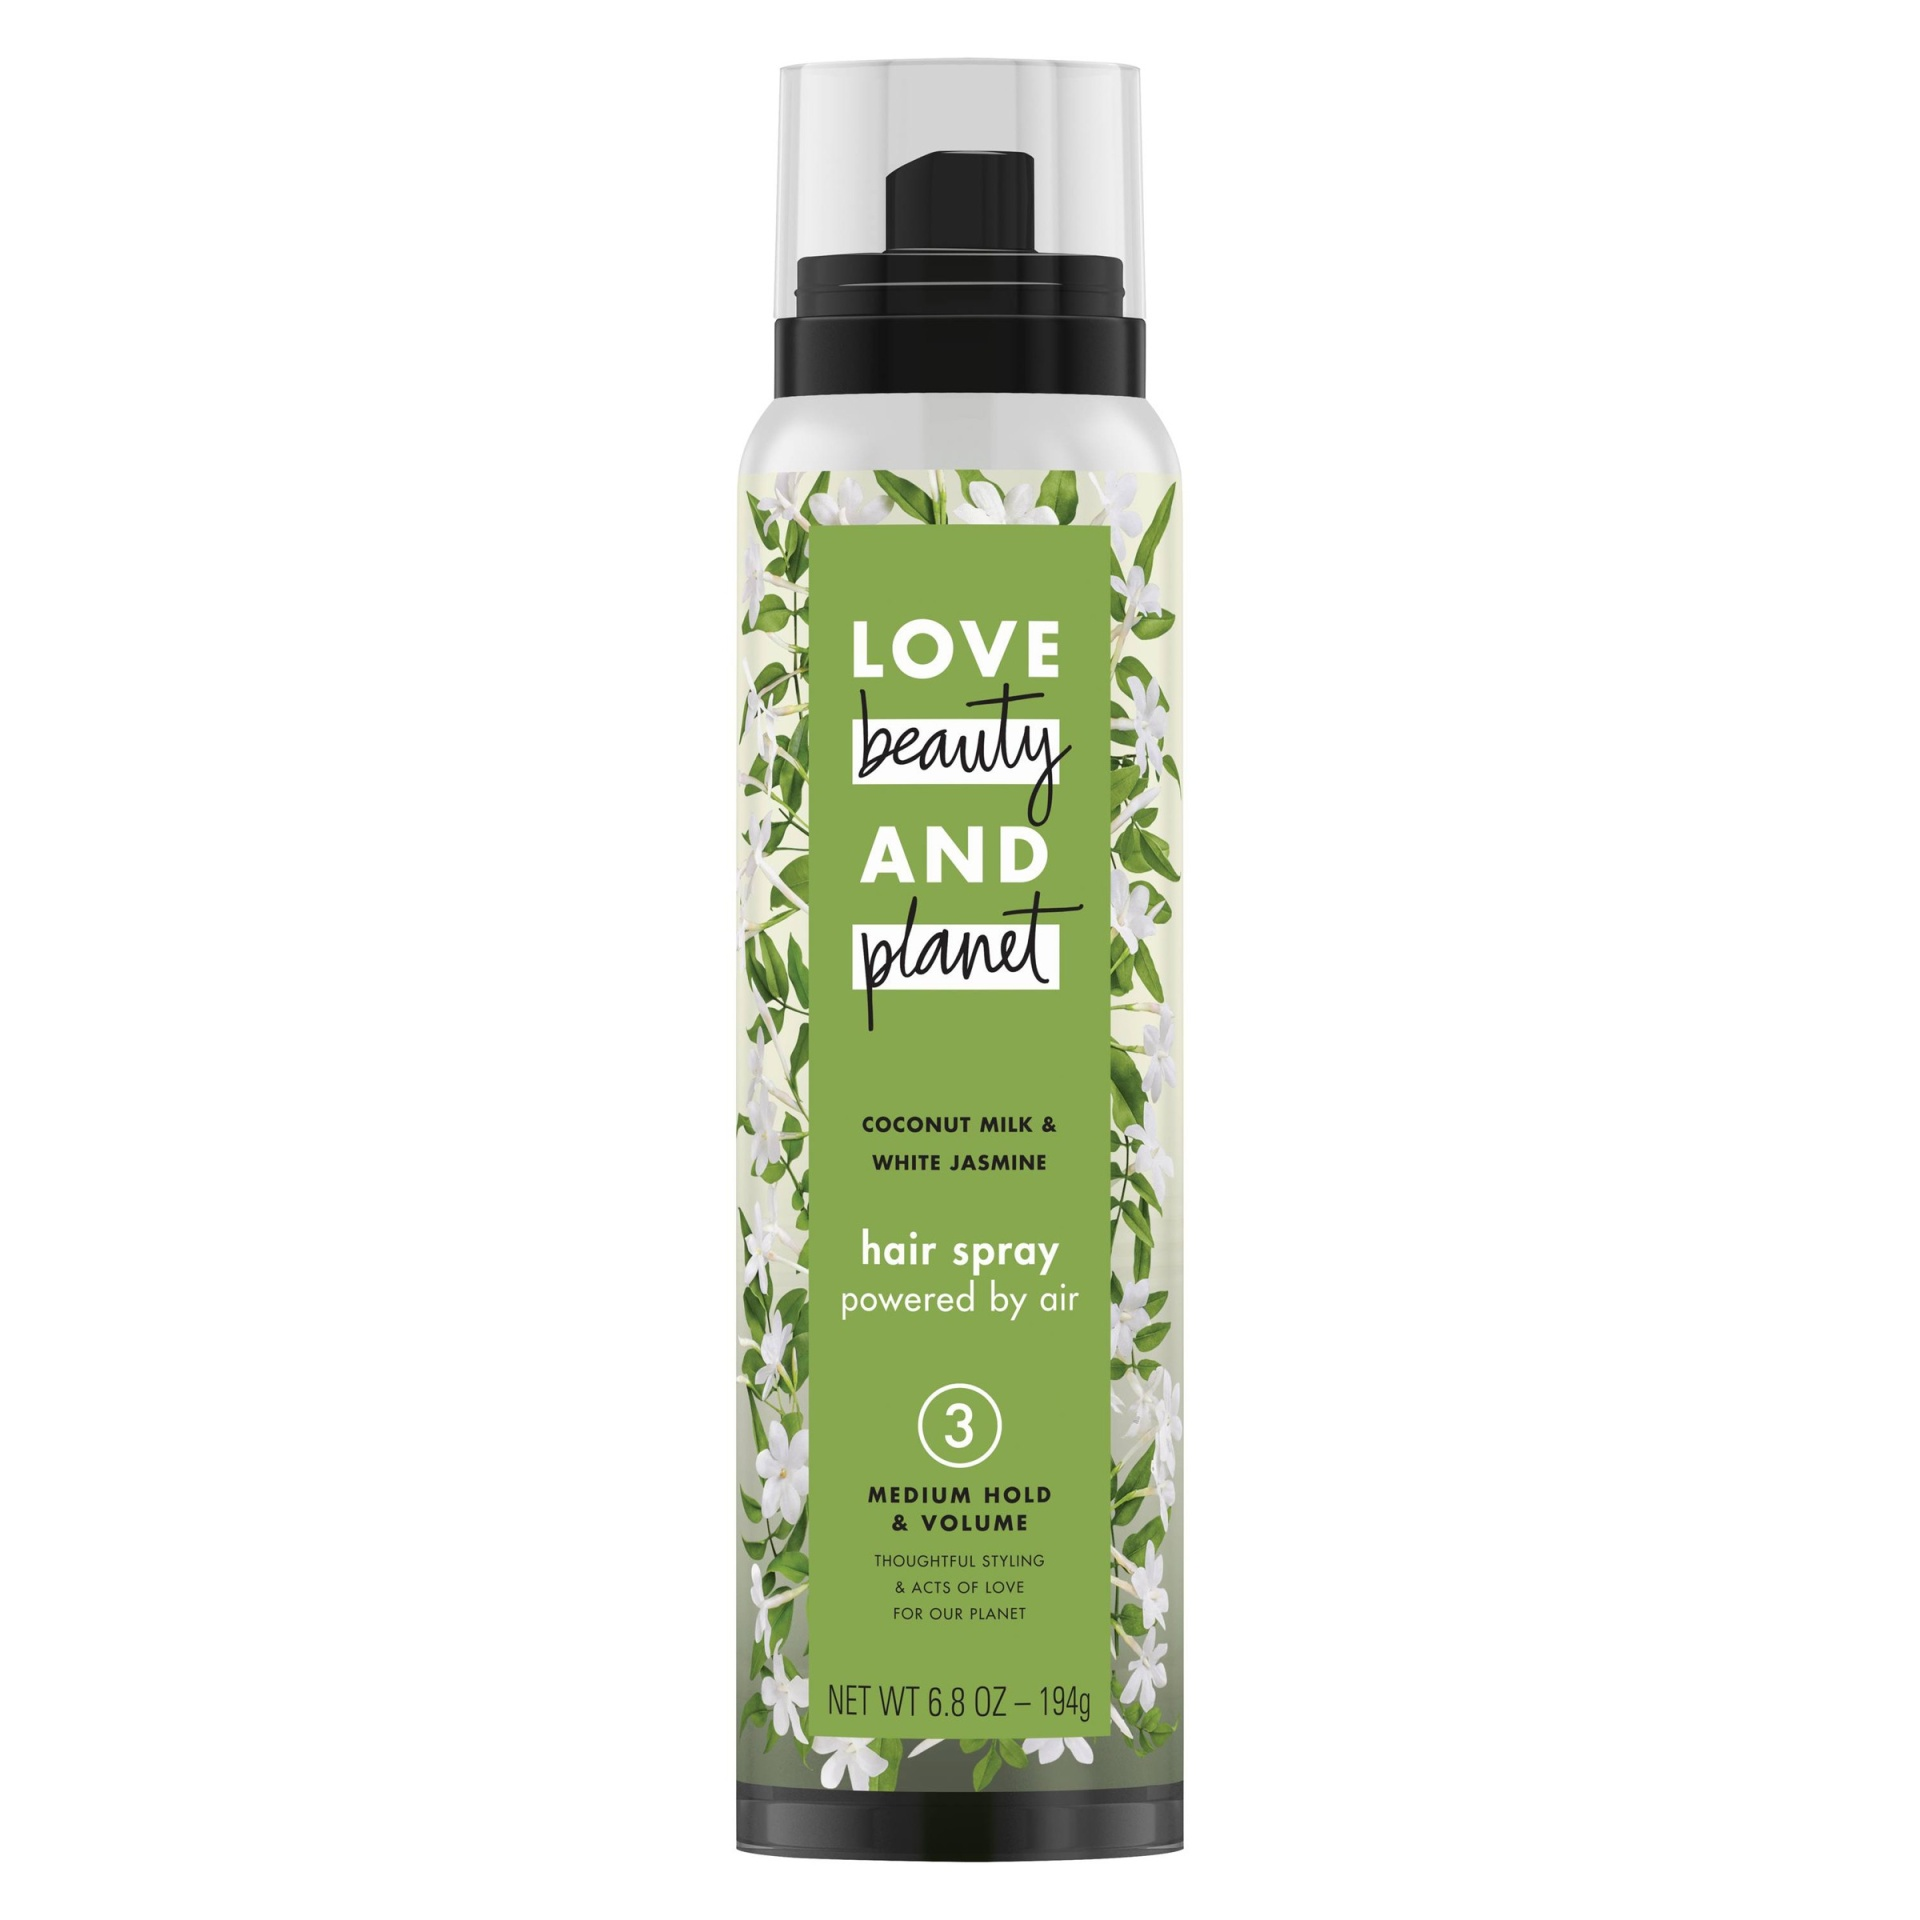 slide 1 of 6, Love Beauty and Planet Coconut Milk & White Jasmine Medium Hold & Volume Hair Spray ,